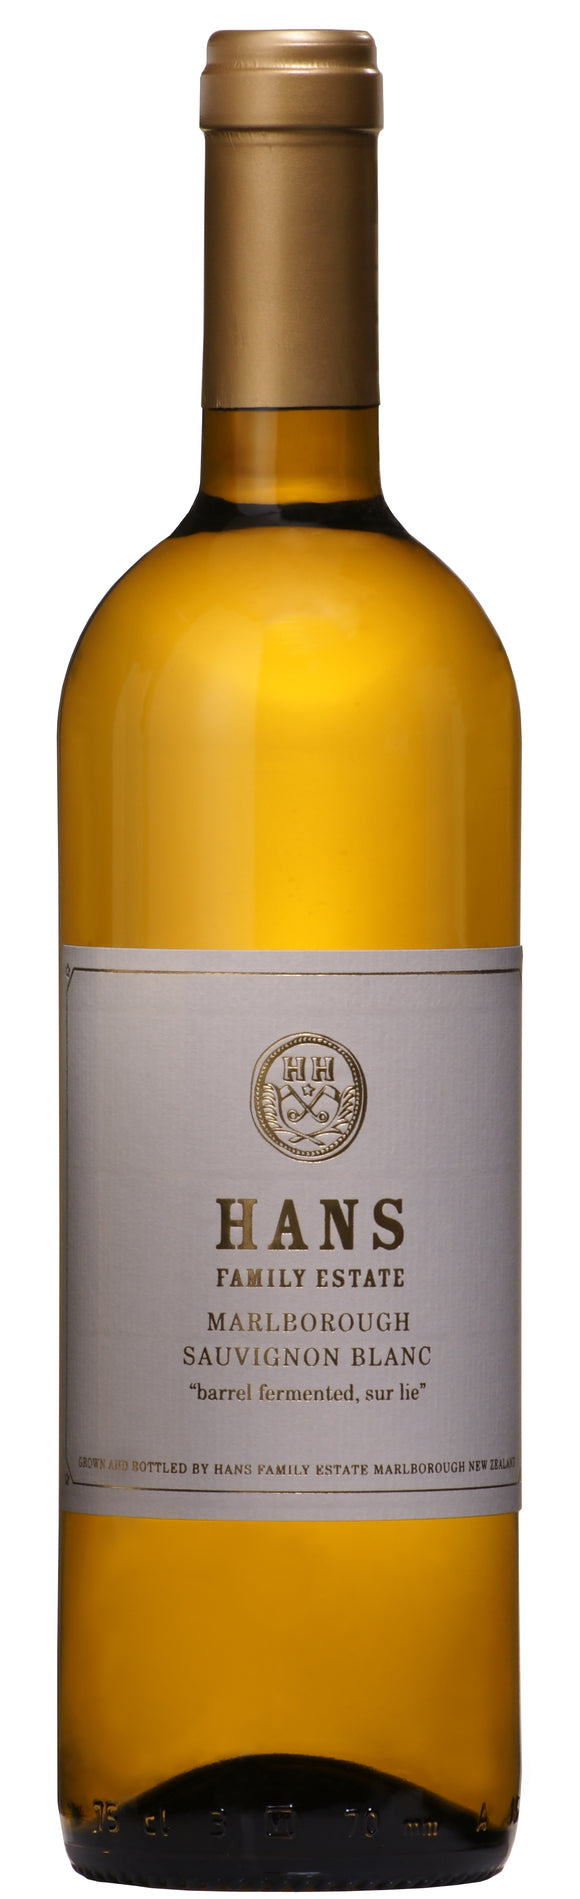 Hans Herzog Sauvignon Blanc 'Sur Lie', Marlborough, New Zealand